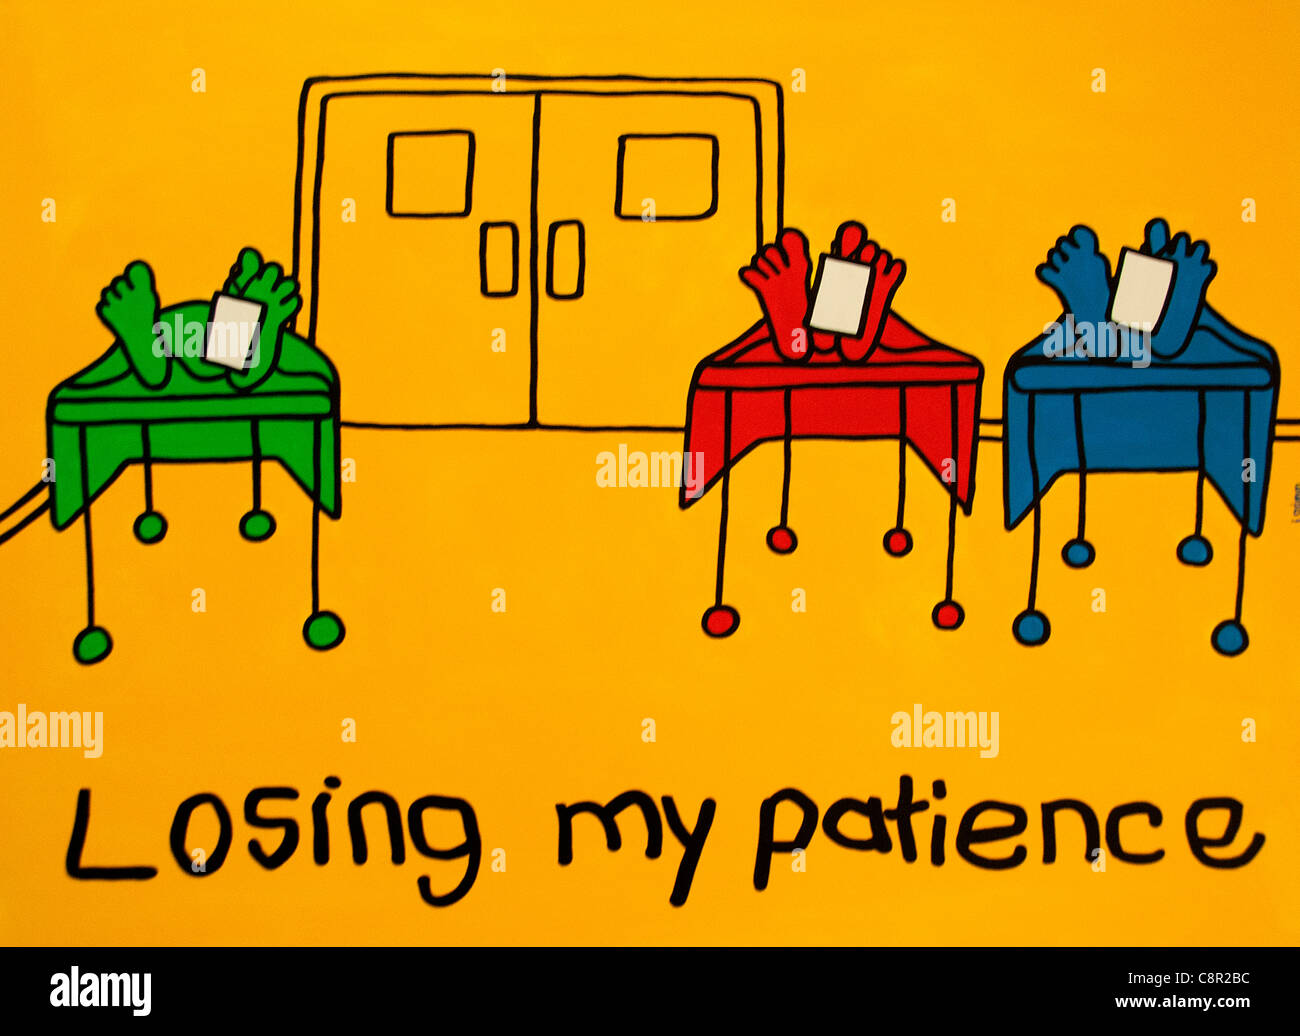 Losing my Patience Hospital Feet Dead dead woman women men man on table with toe tag tags feet toes label identity - Stock Image